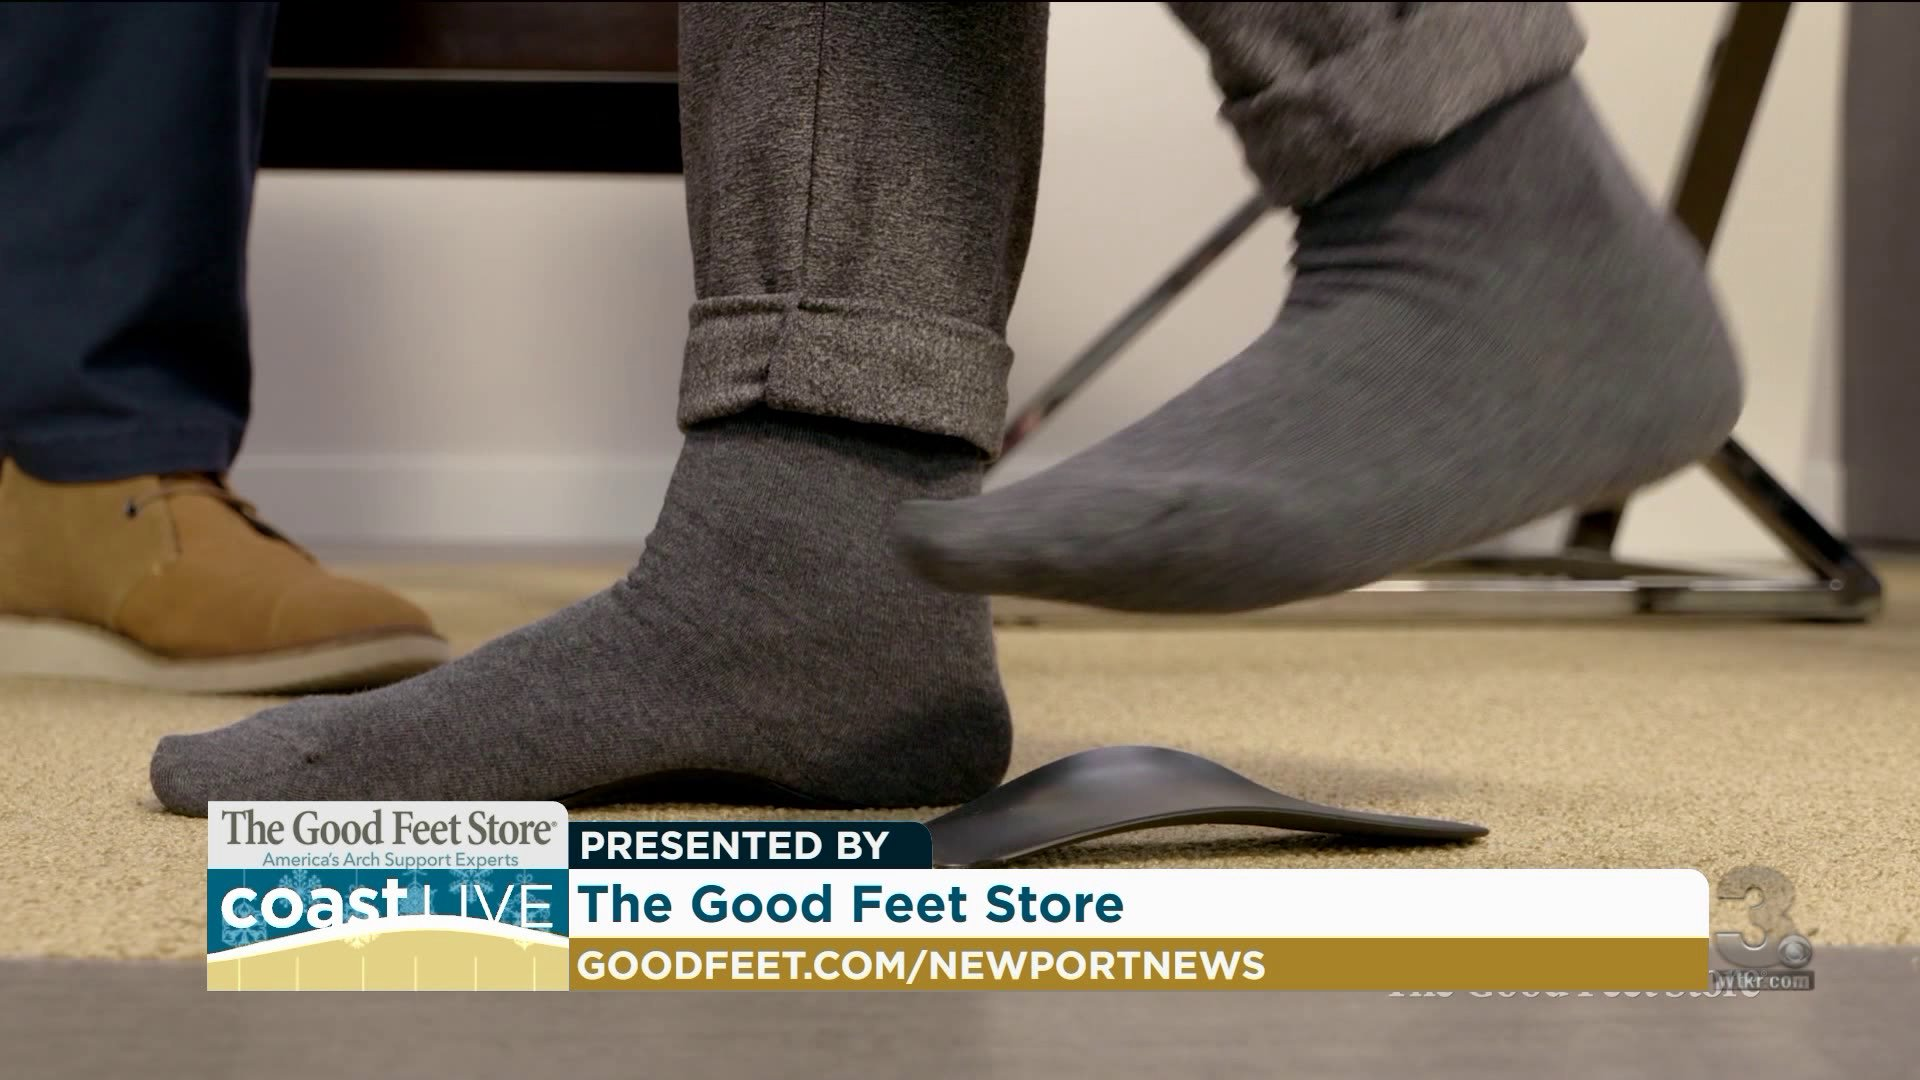 balance test for arch support in Coast Live